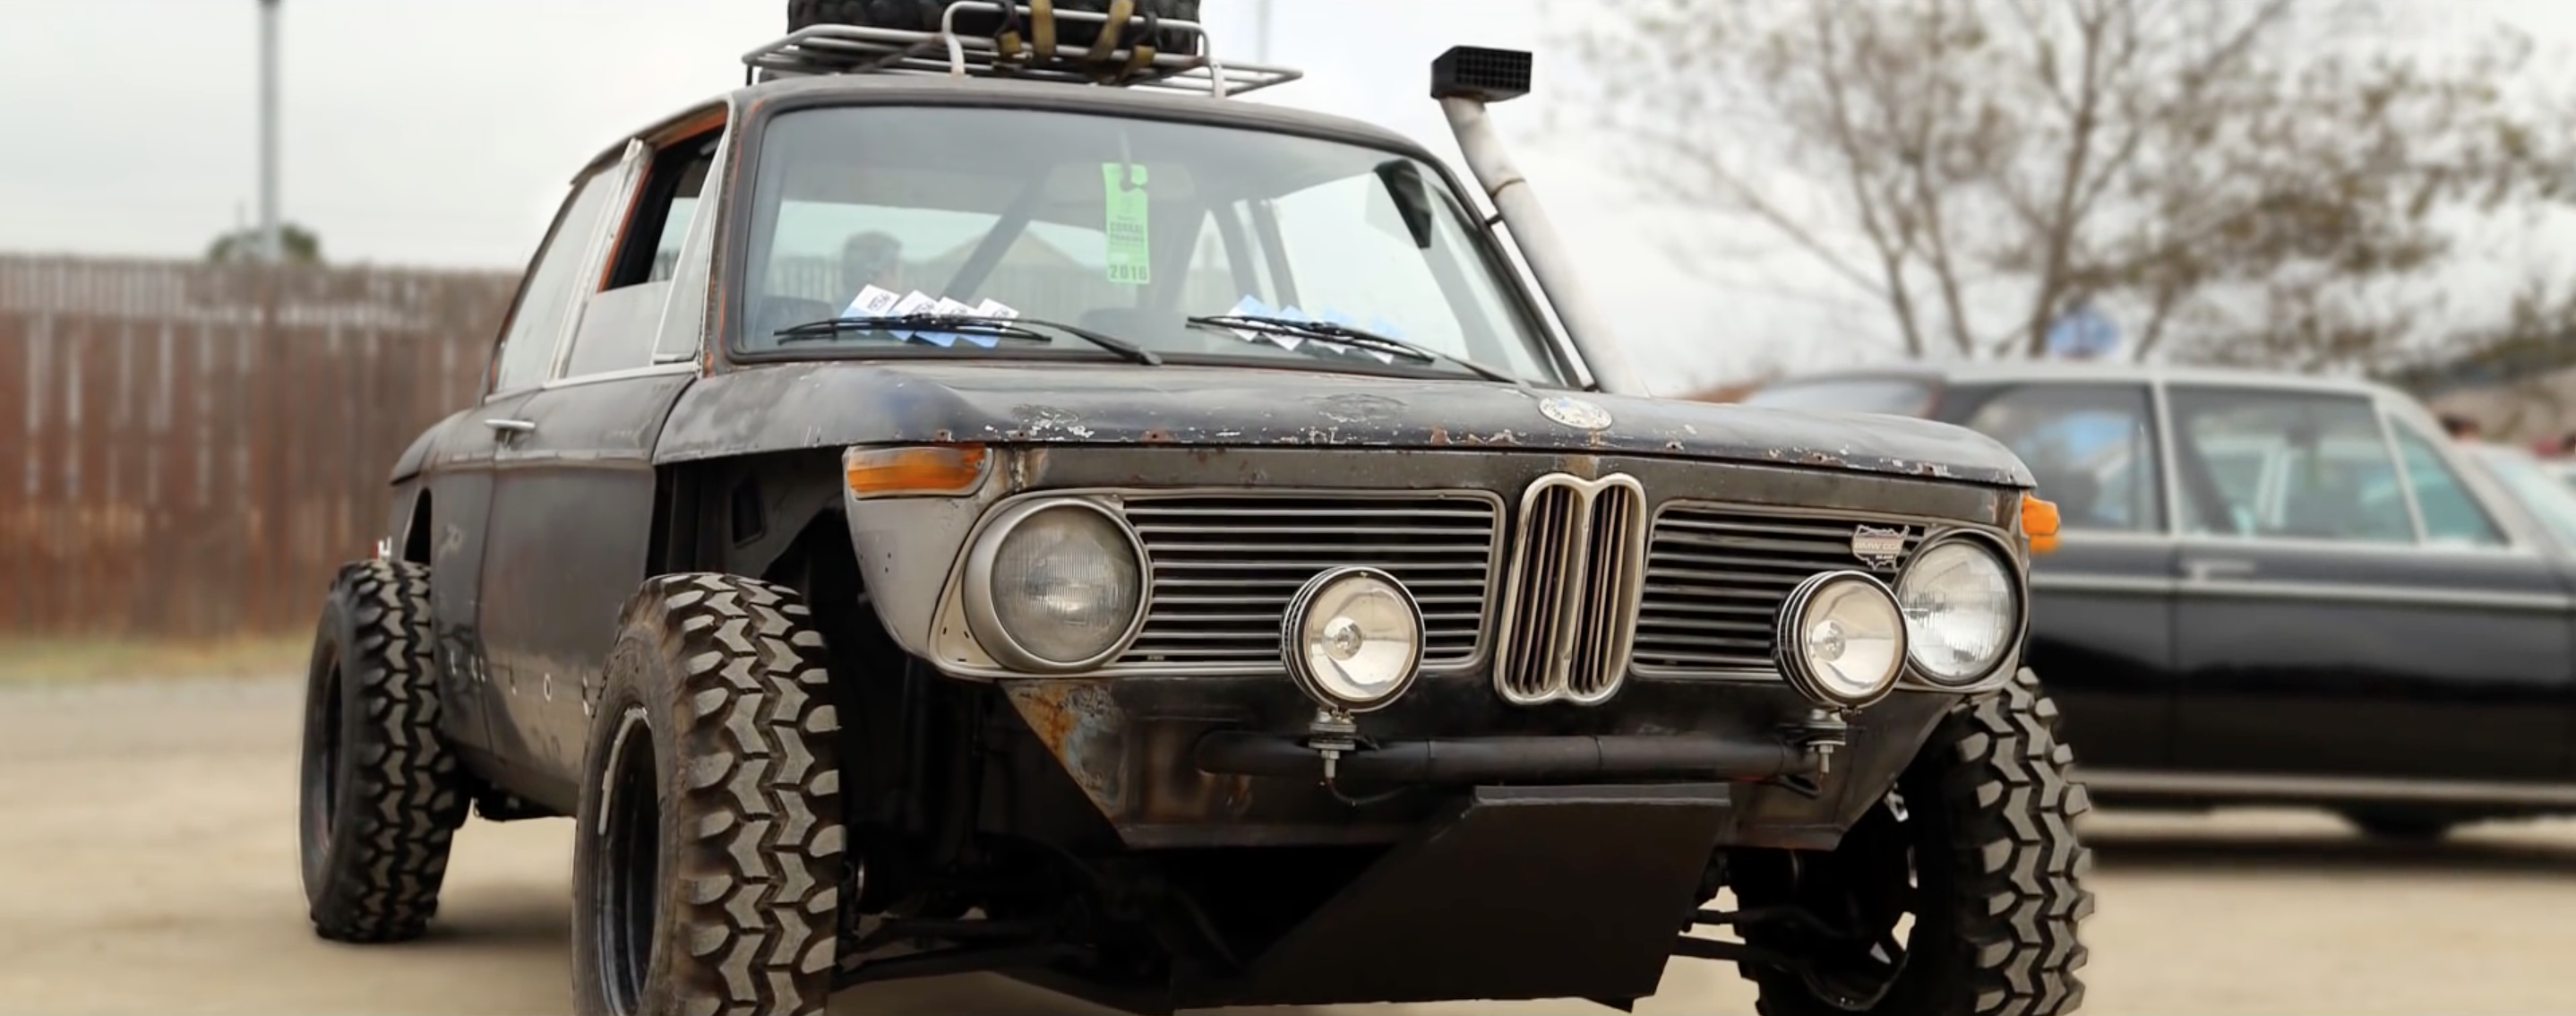 off road bmw 2002